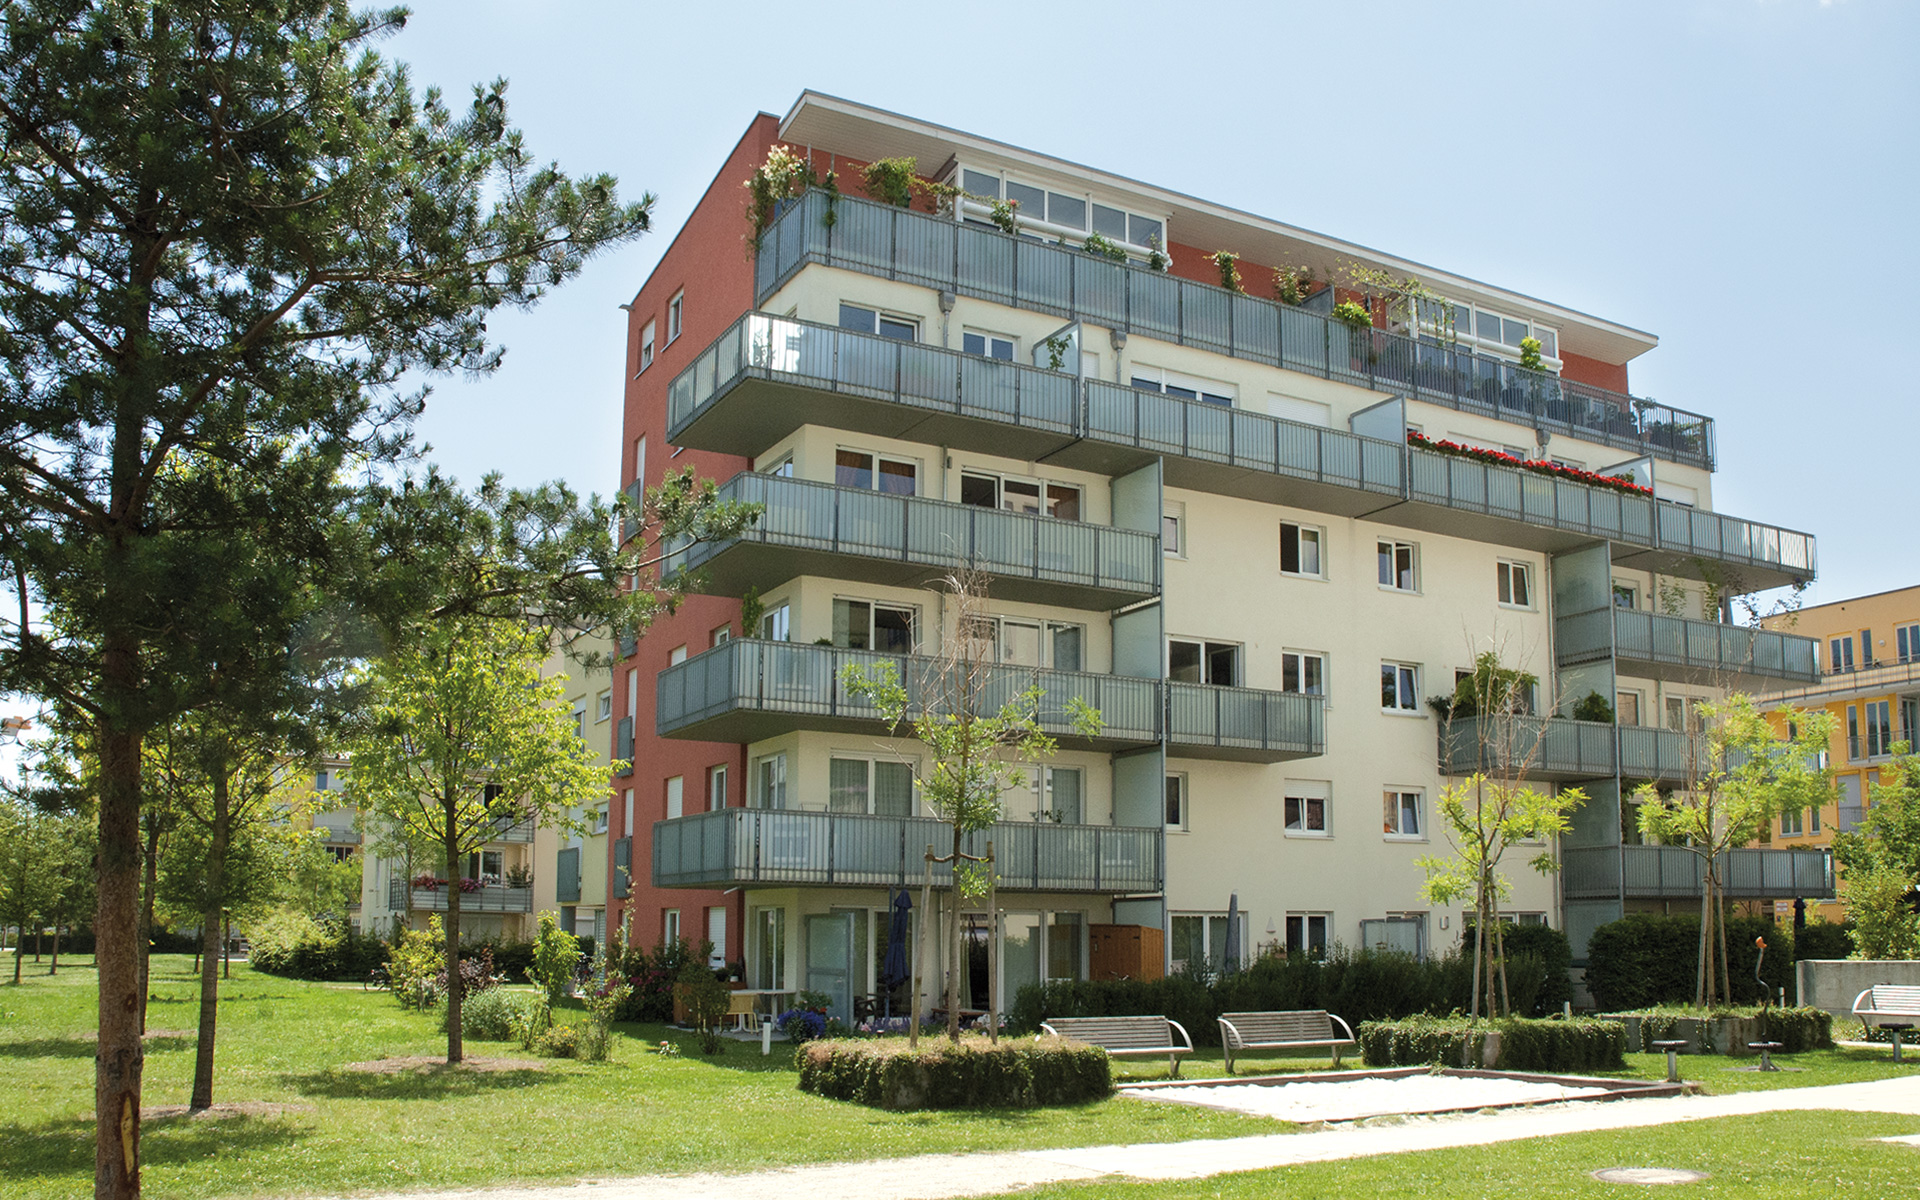 Parkstadt Schwabing is a completely new urban quarter springing up in the north of Munich.